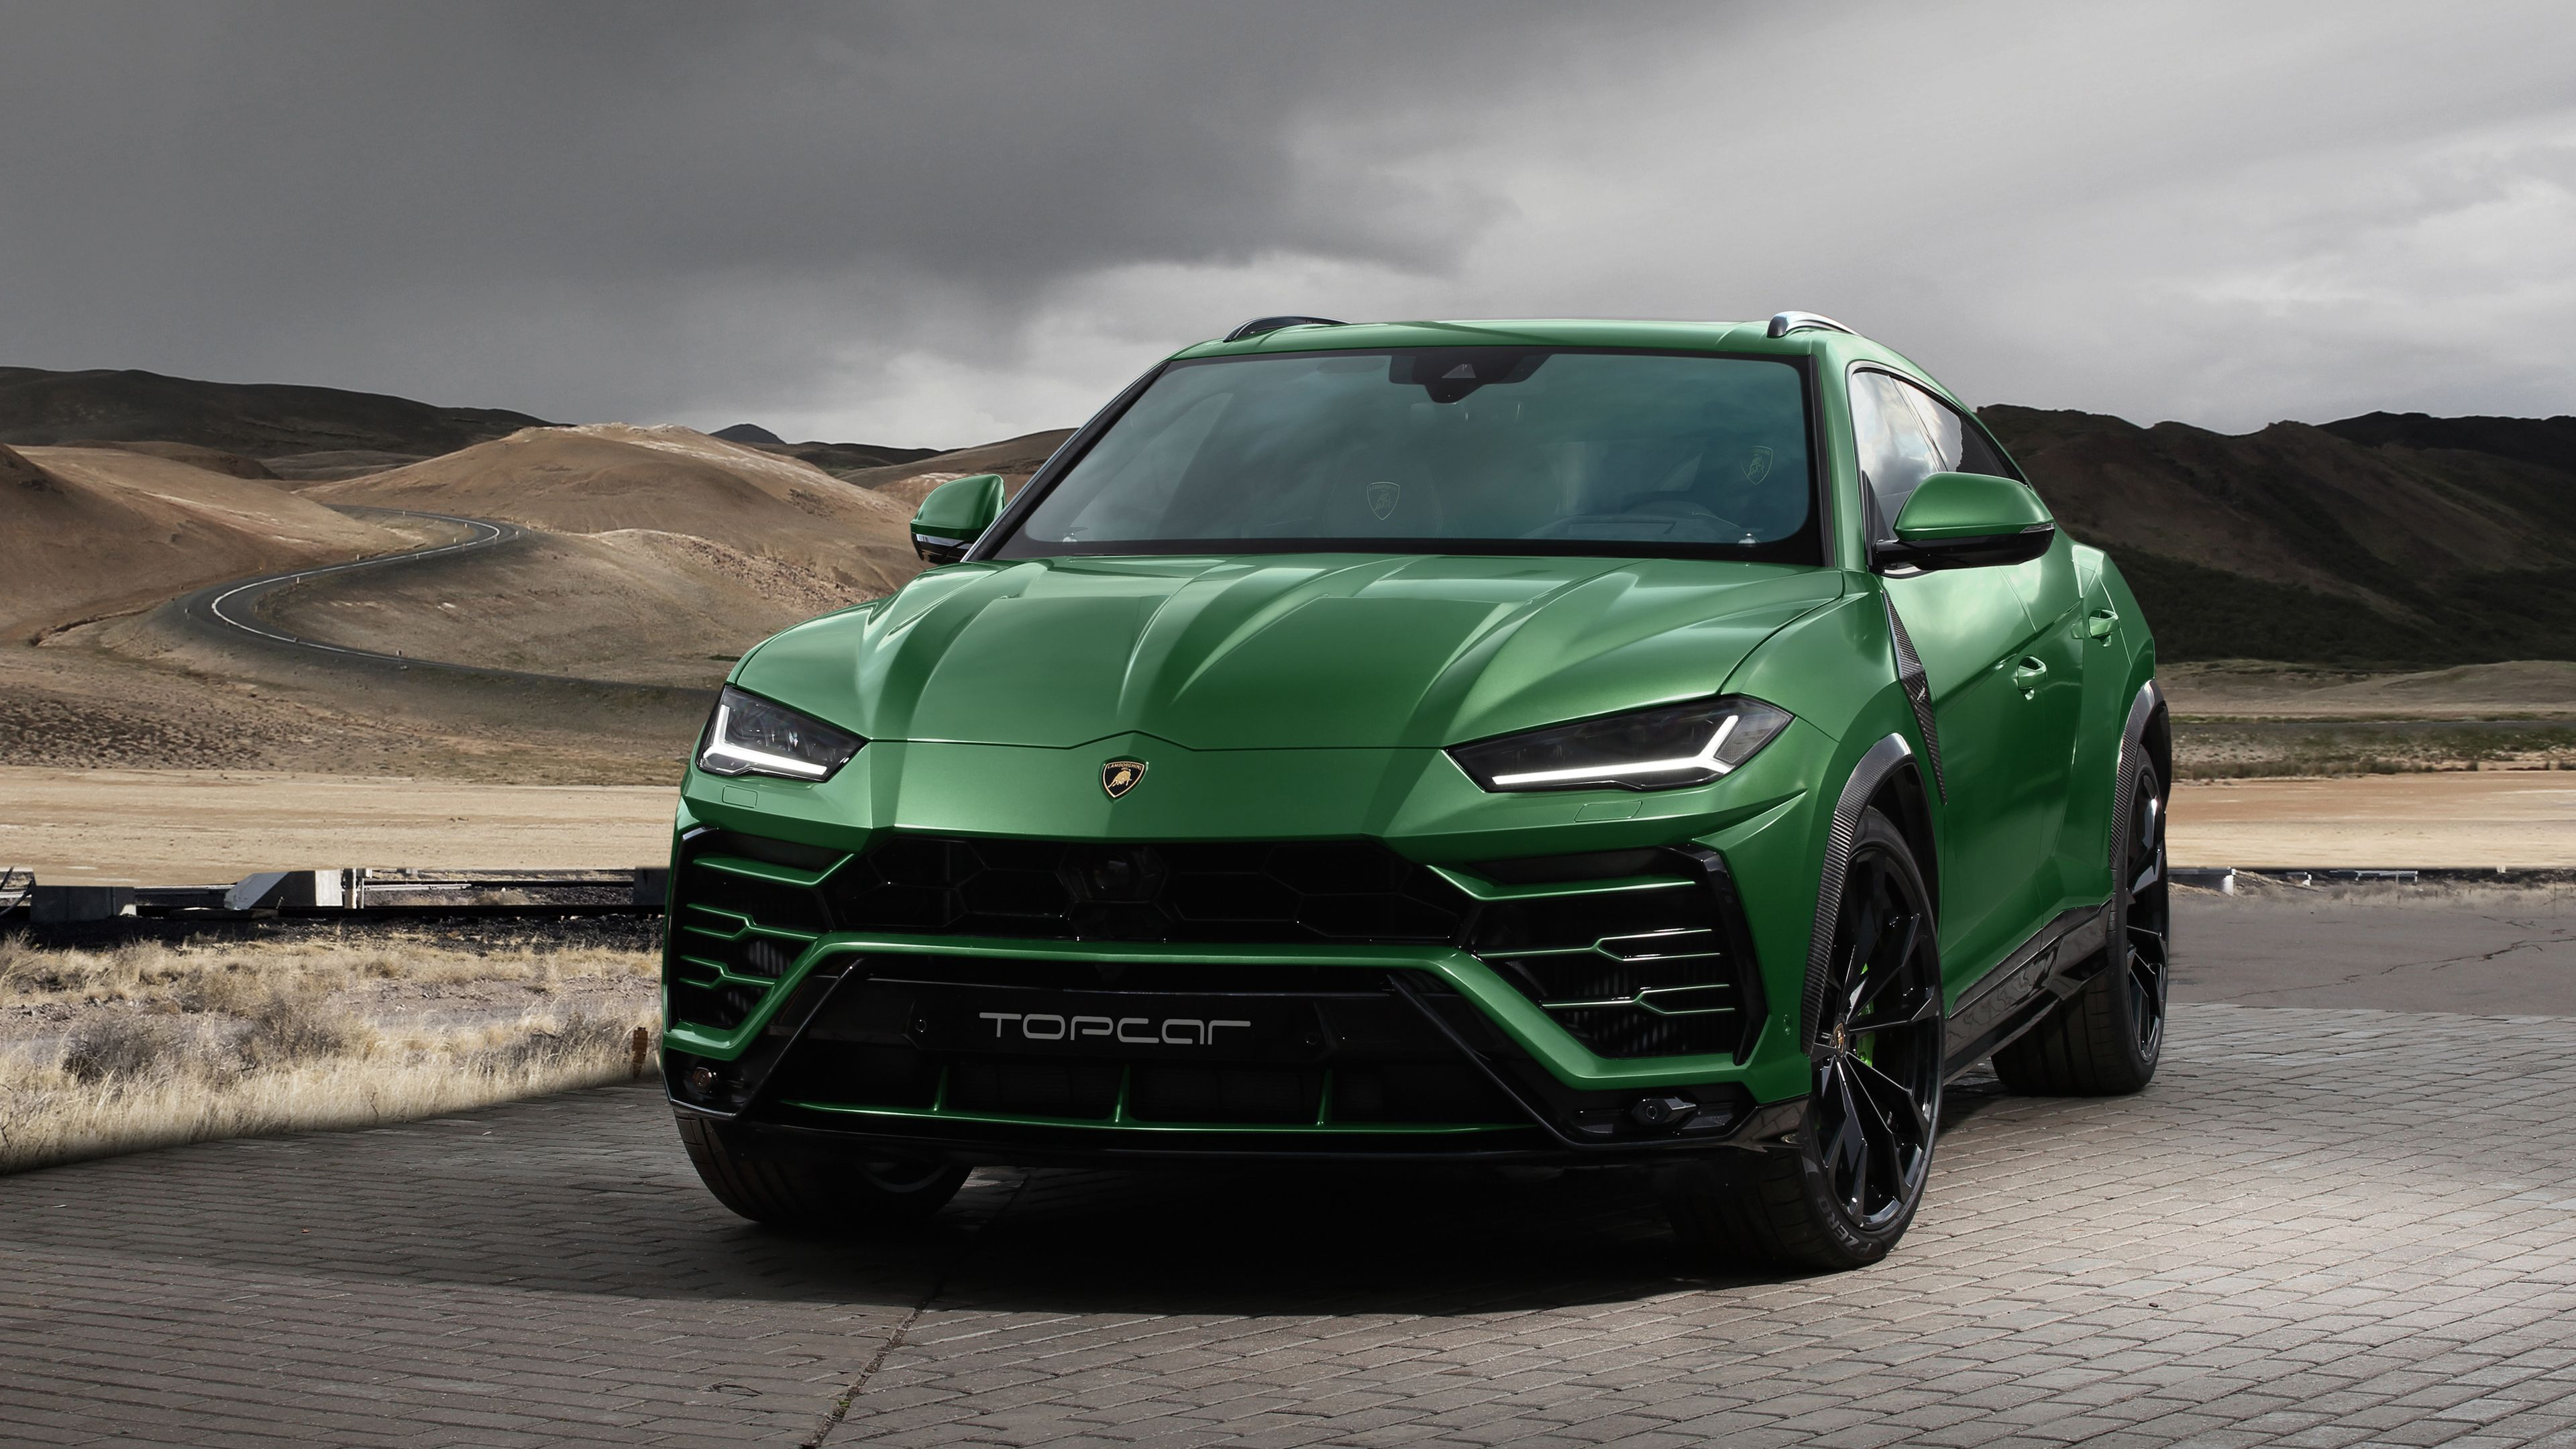 Wallpaper 4k Topcar Lamborghini Urus 2018 4k 2018 Cars Wallpapers